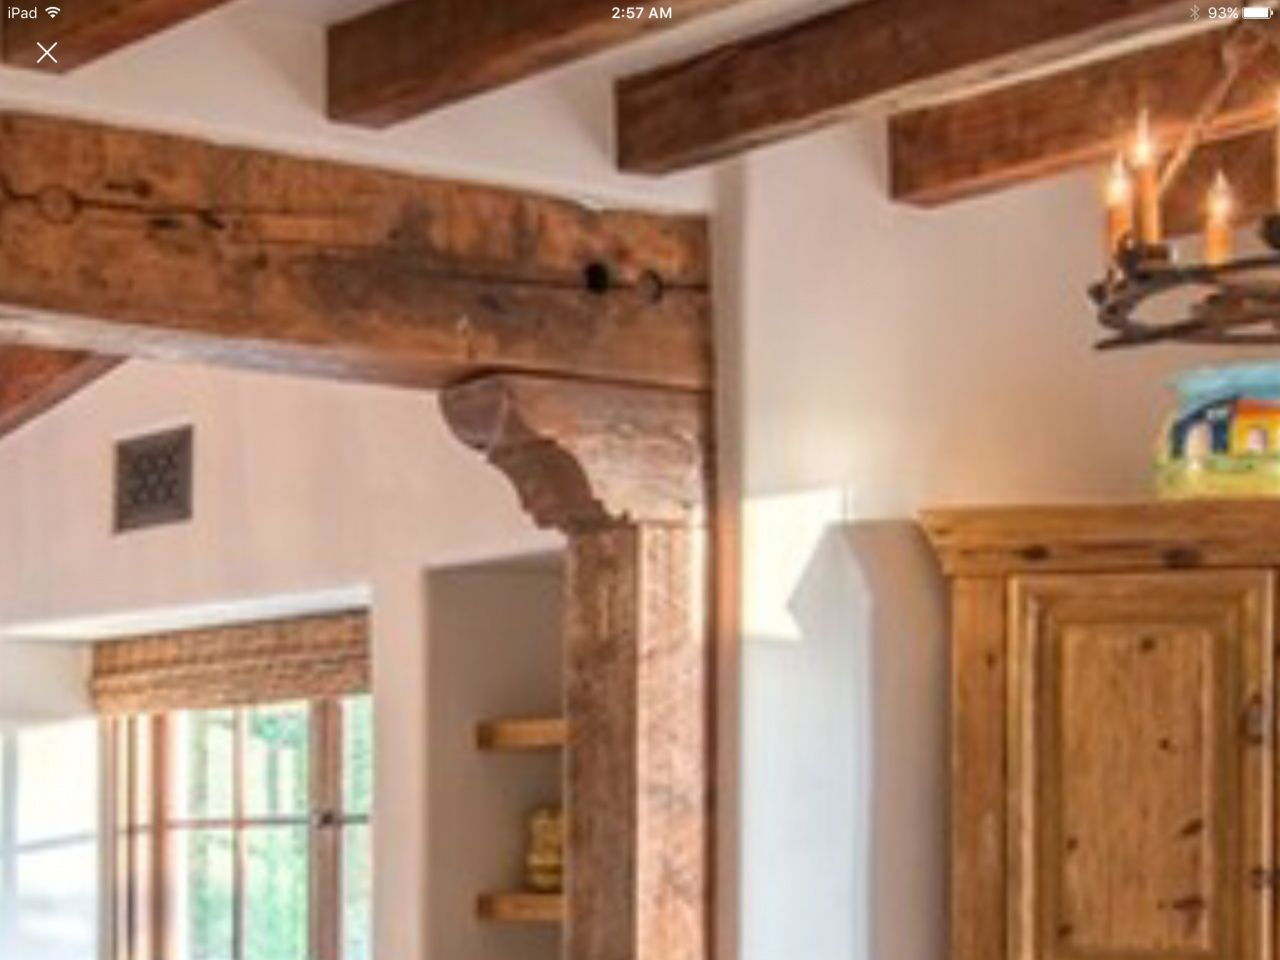 Adding Wood Beams To Ceiling In 2020 Wood Beam Ceiling Wood